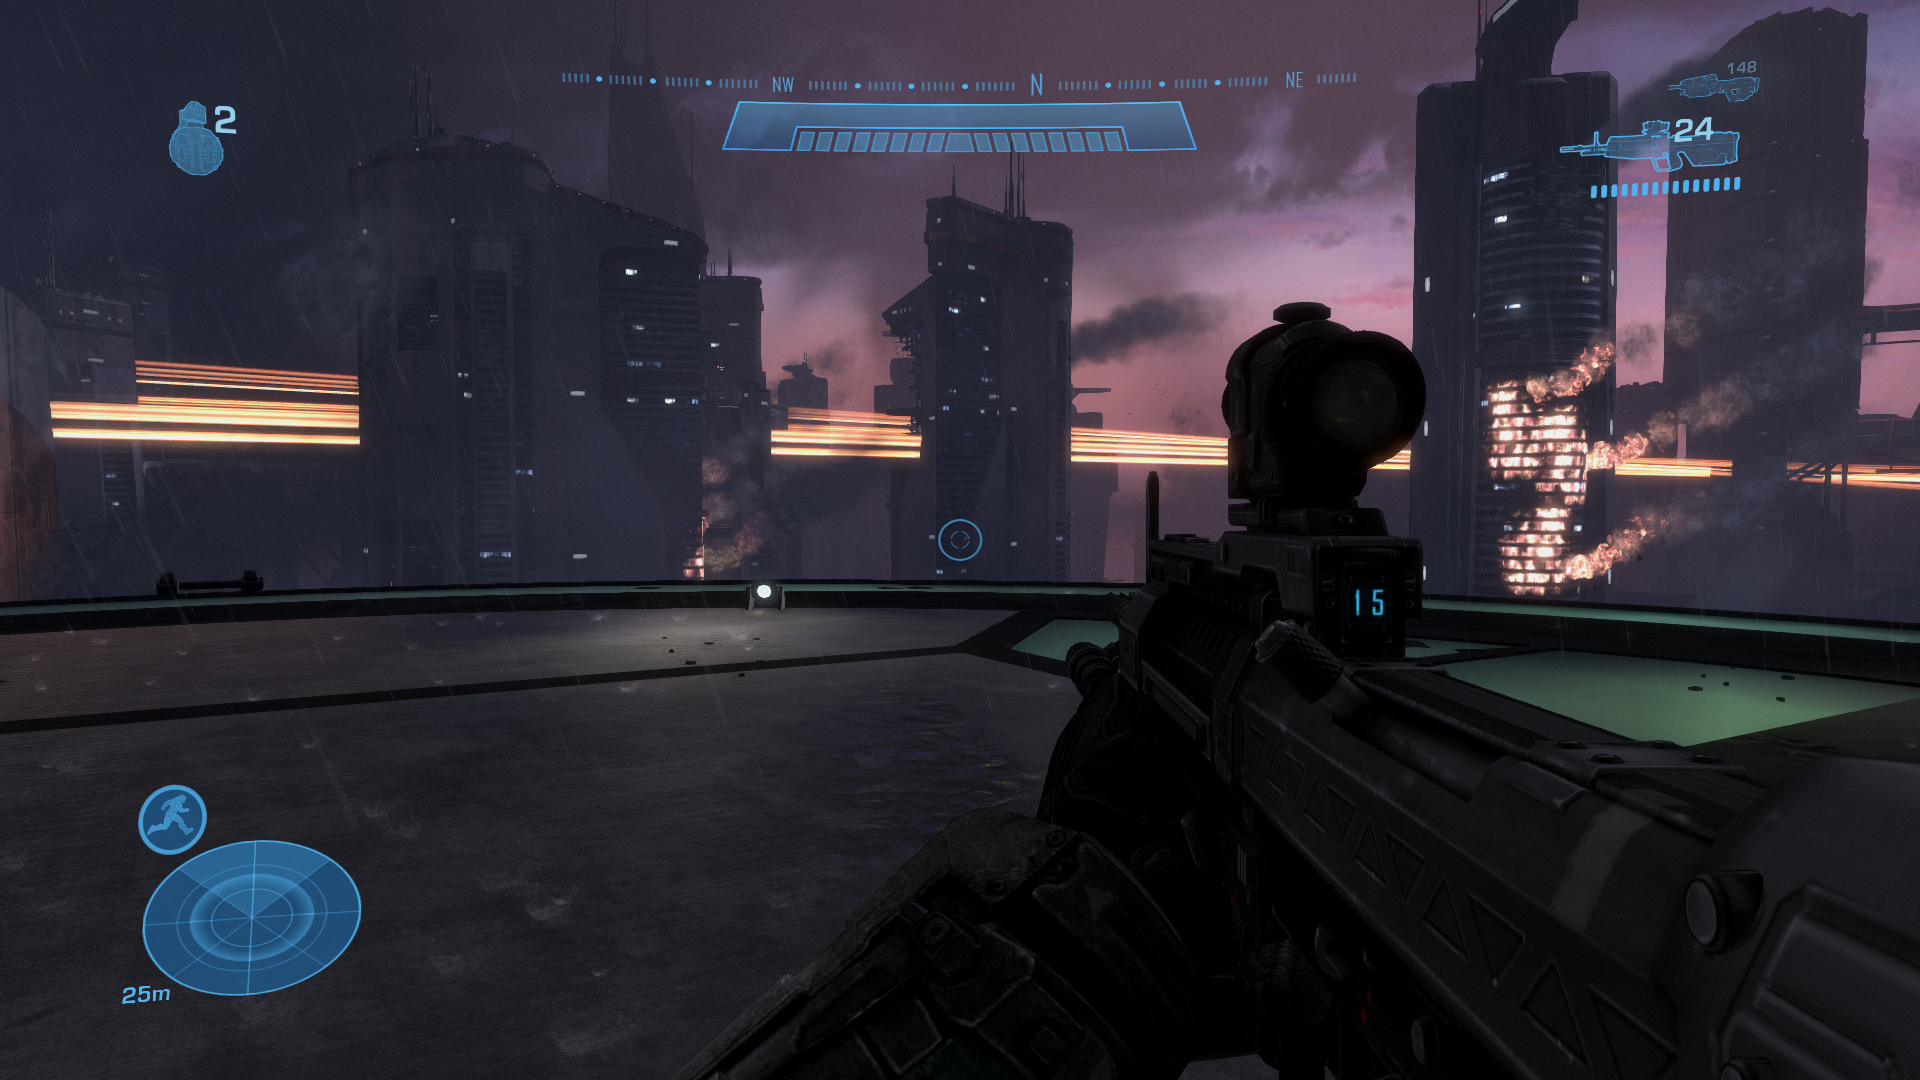 Halo_Reach_Rendering_Issue